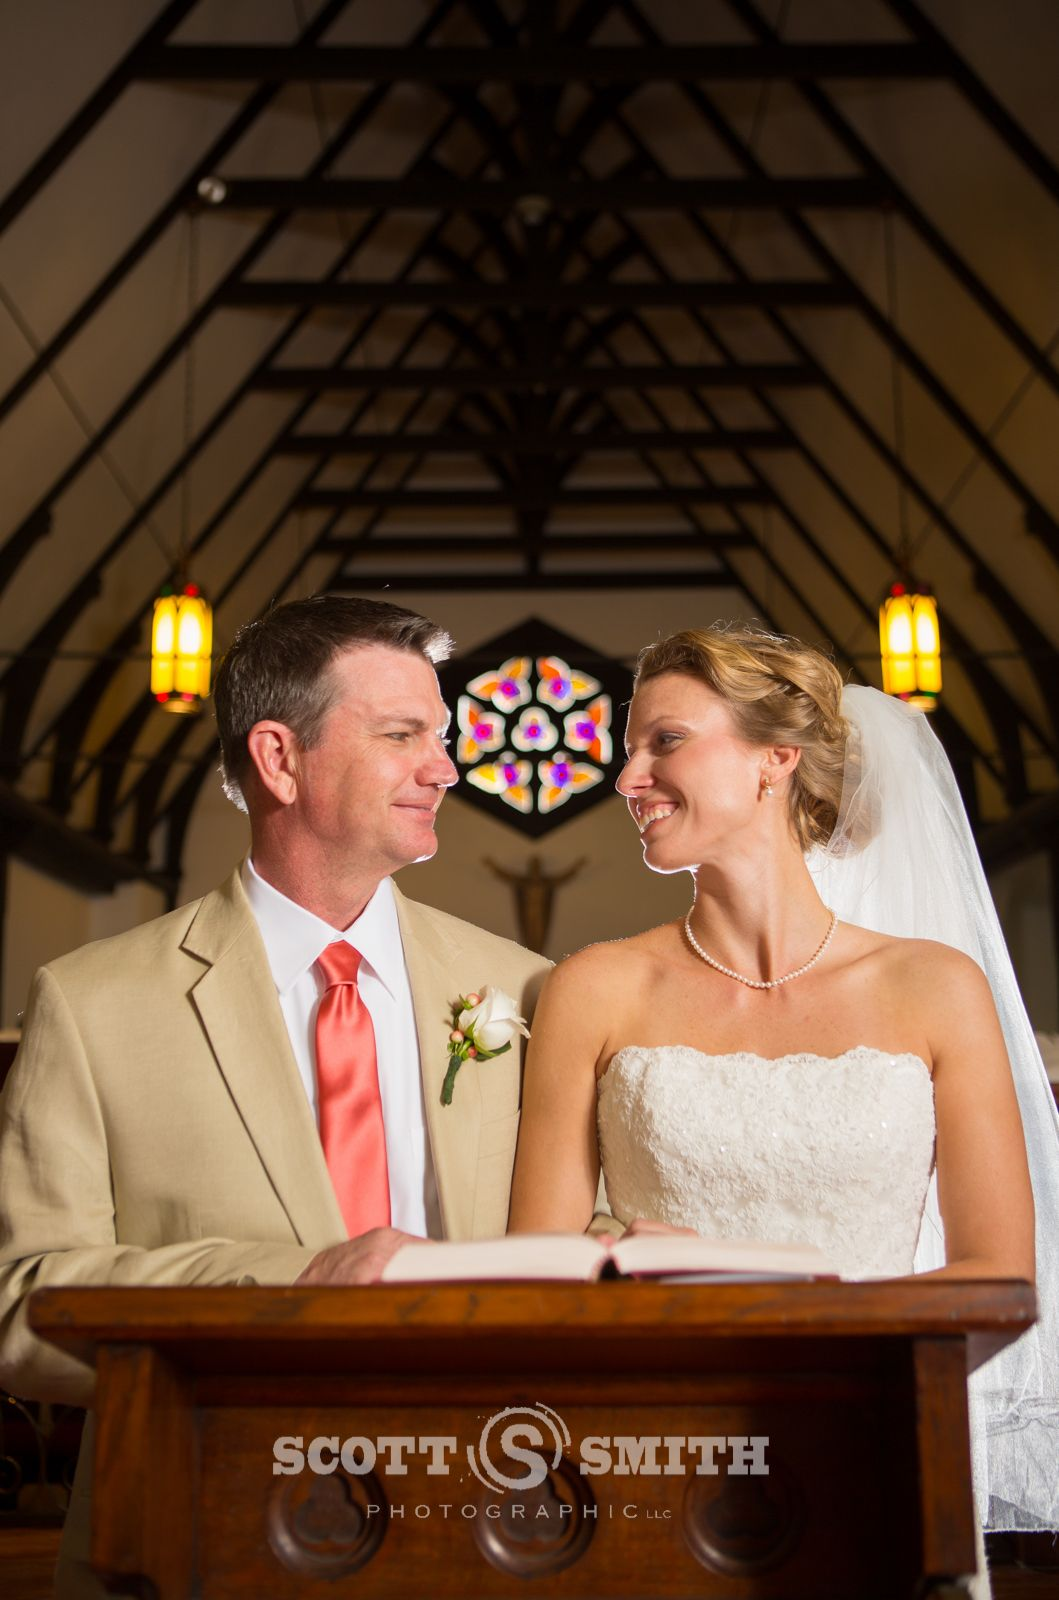 Couple in church knelling at the alter palatka florida